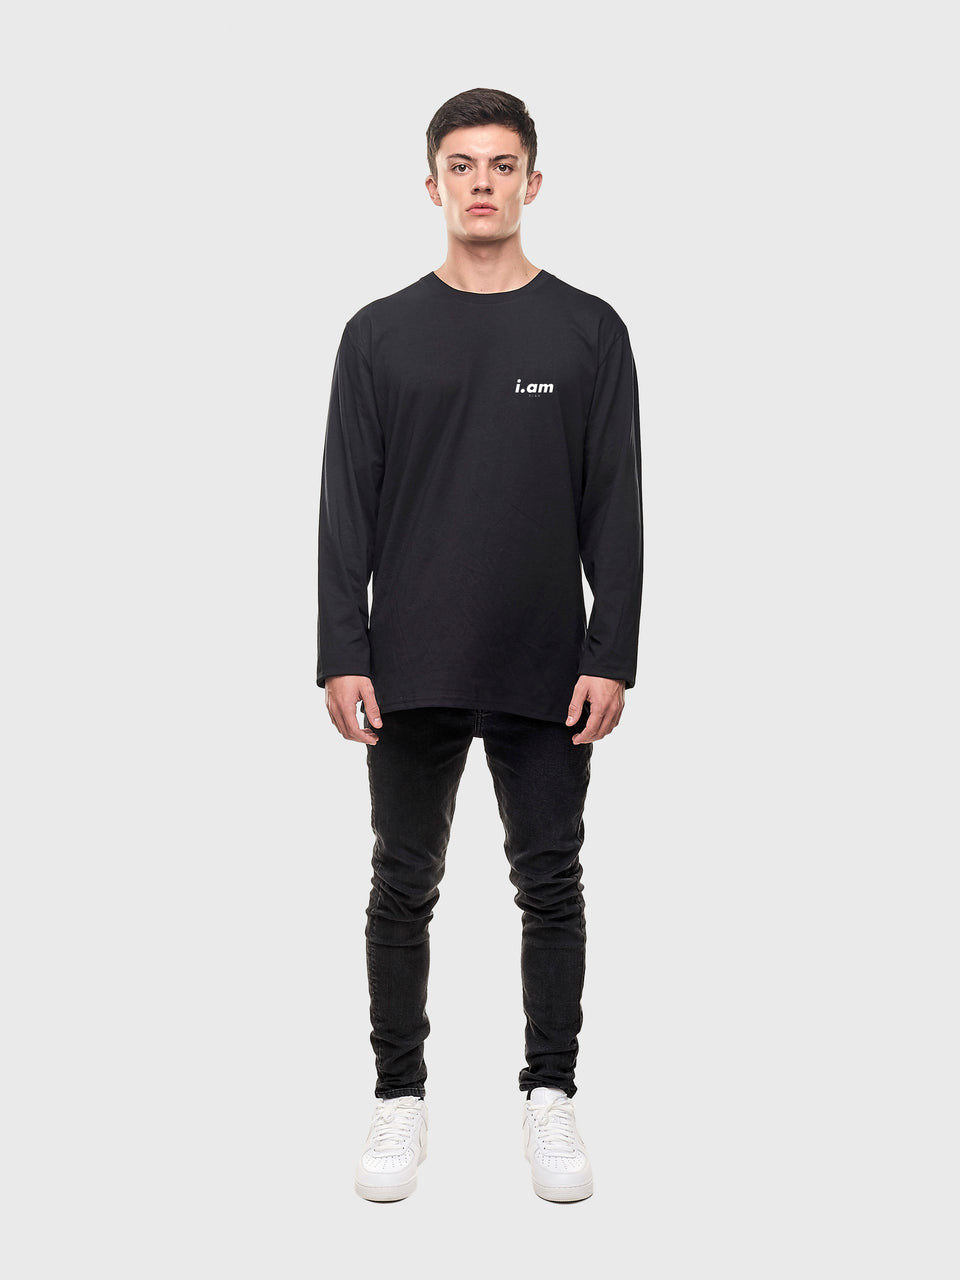 Am.bisch.ous - Black - unisex Long sleeve T